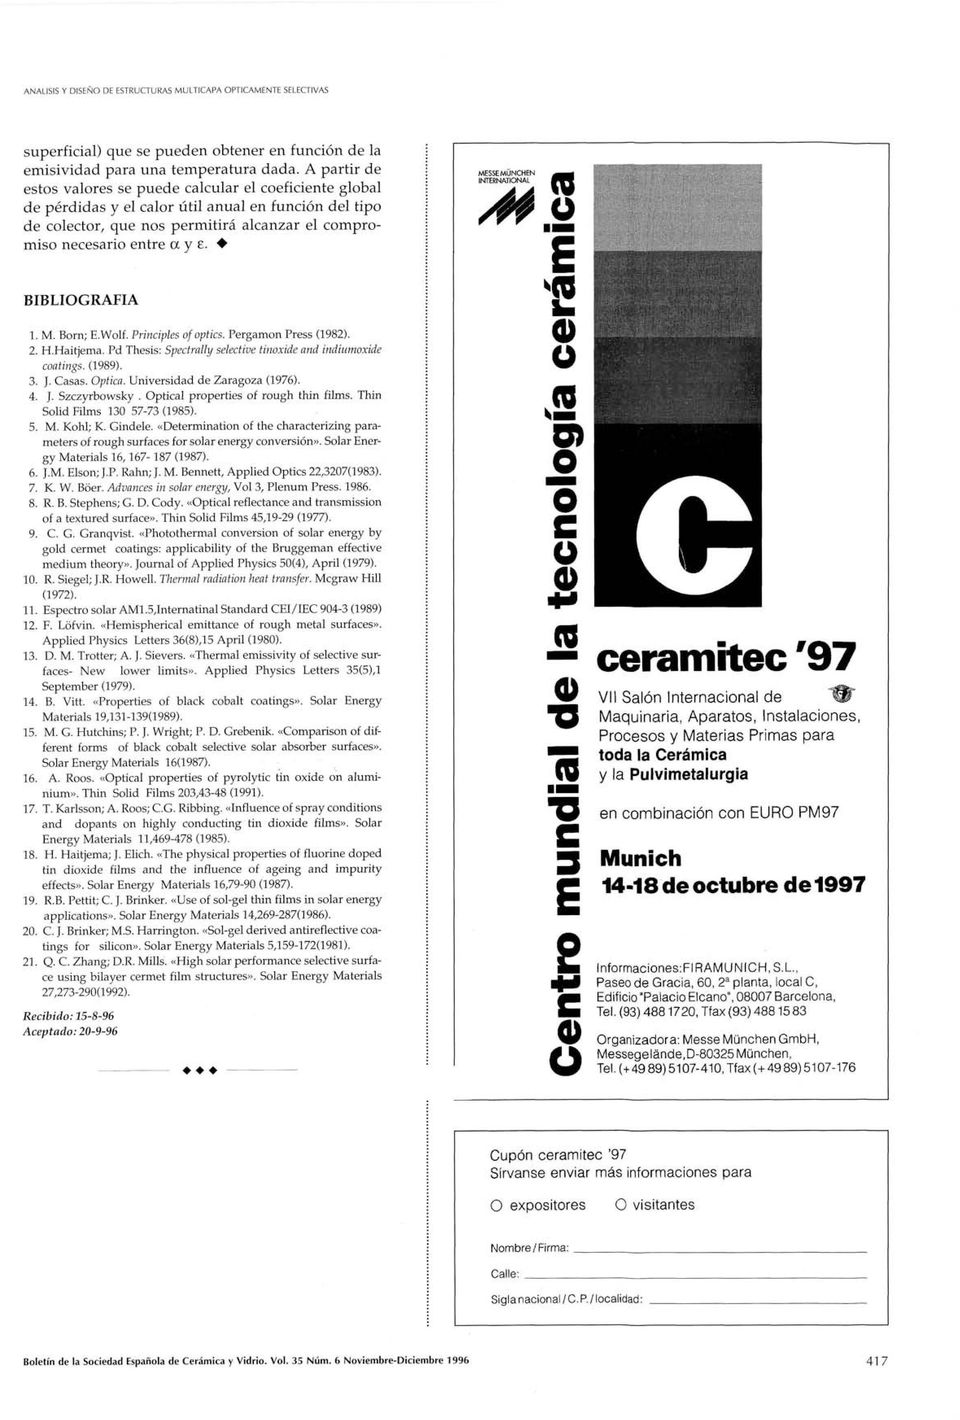 BIBLIOGRAFÍA 1. M. Born; E.Wolf. Principles of optics. Pergamon Press (1982). 2. H.Haitjema. Pd Thesis: Spectrally selective tinoxide and indiumoxide coatings. (1989). 3. J. Casas. Optica.